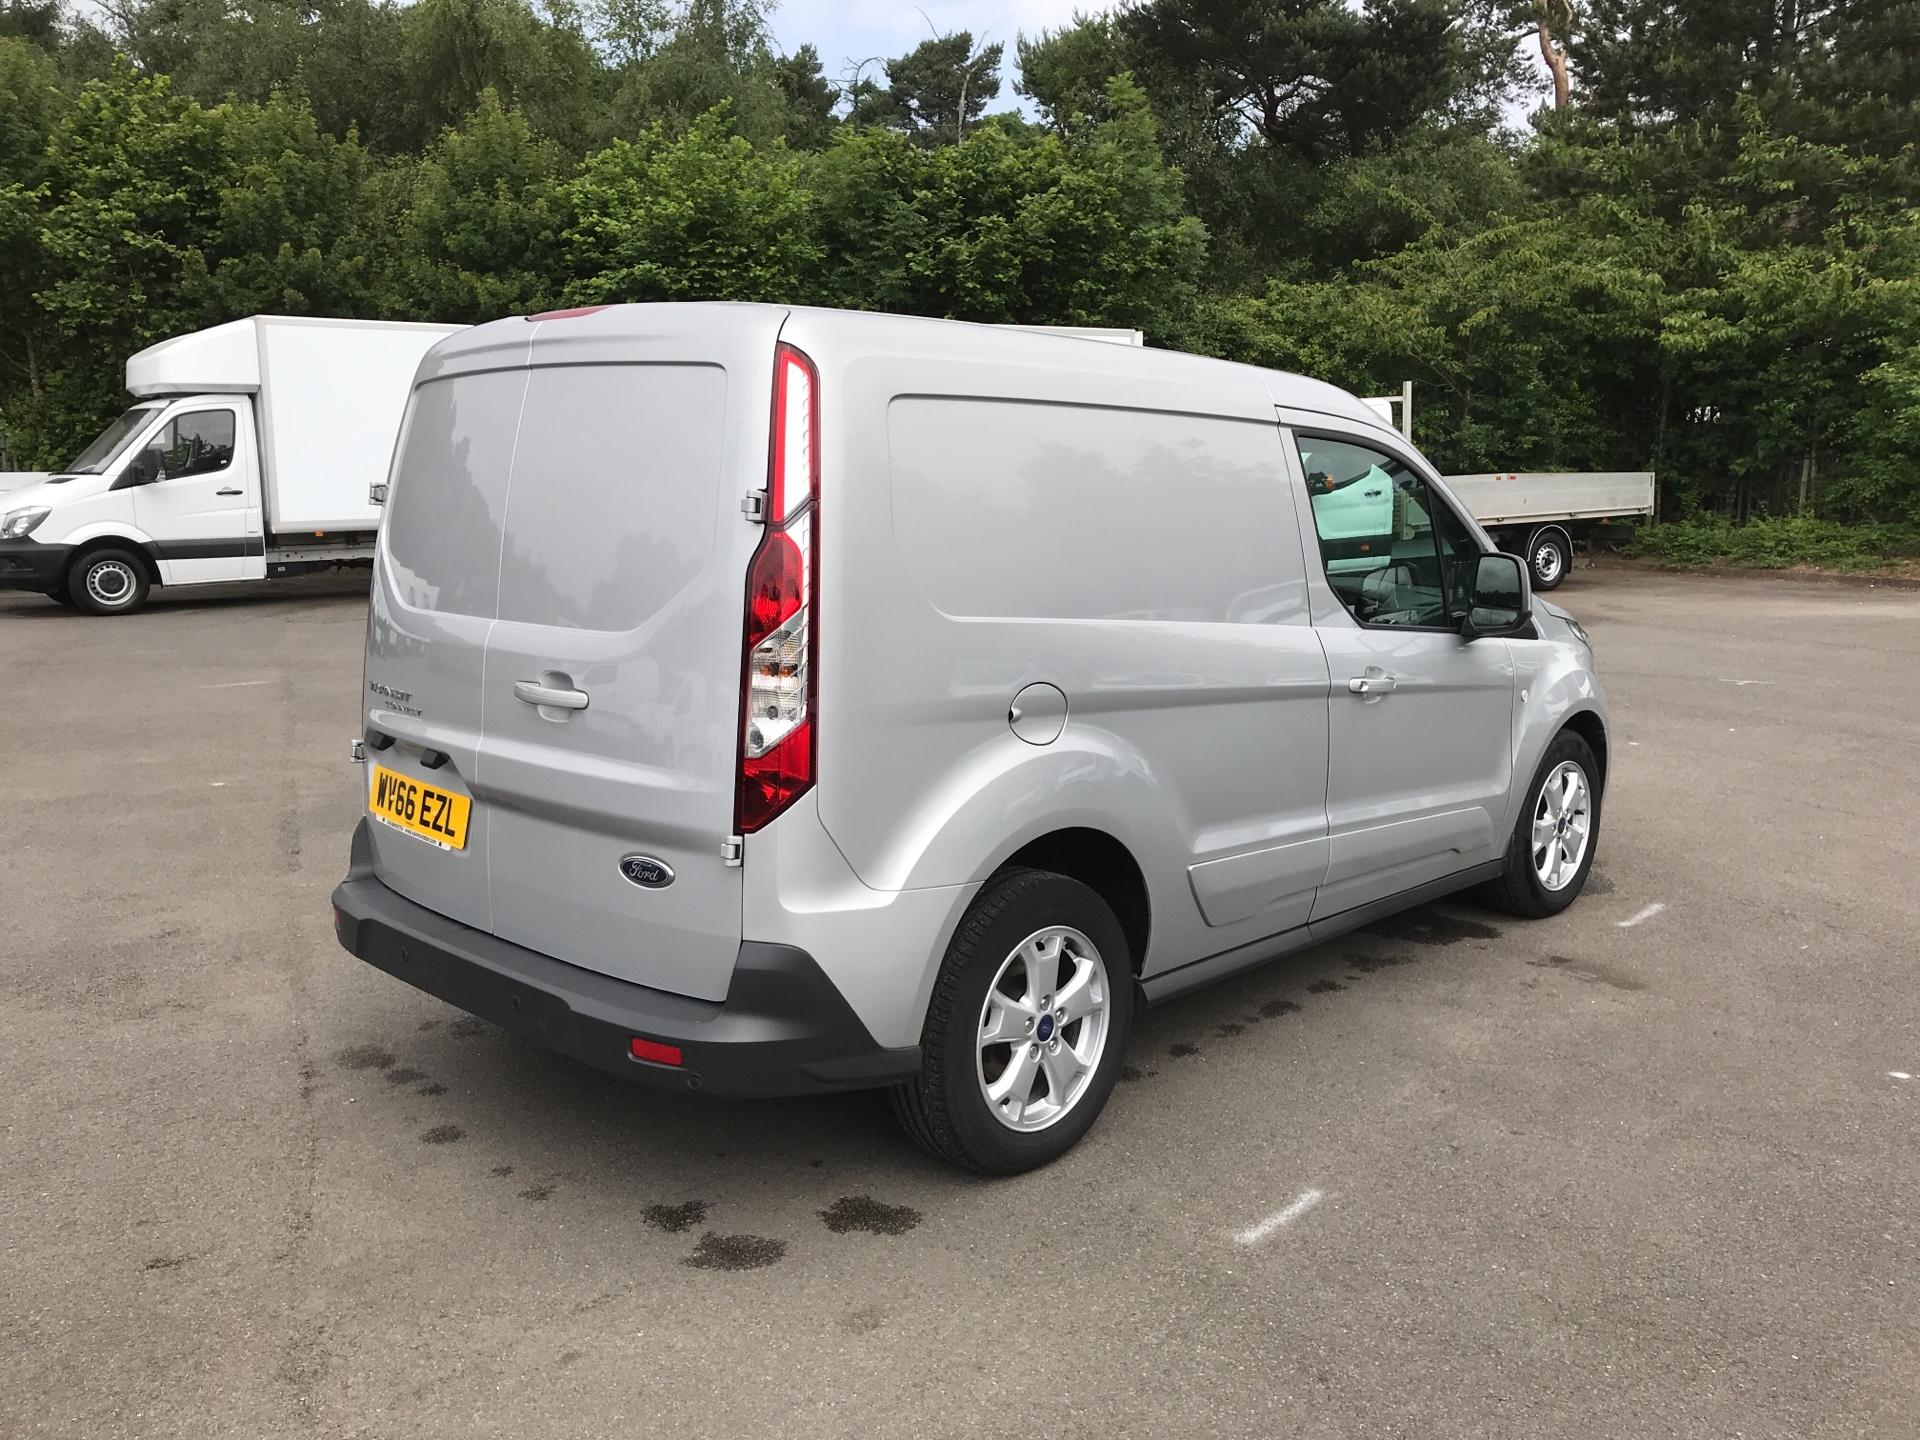 2016 Ford Transit Connect 1.5 Tdci 120Ps Limited Van EURO 6 (WV66EZL) Image 3